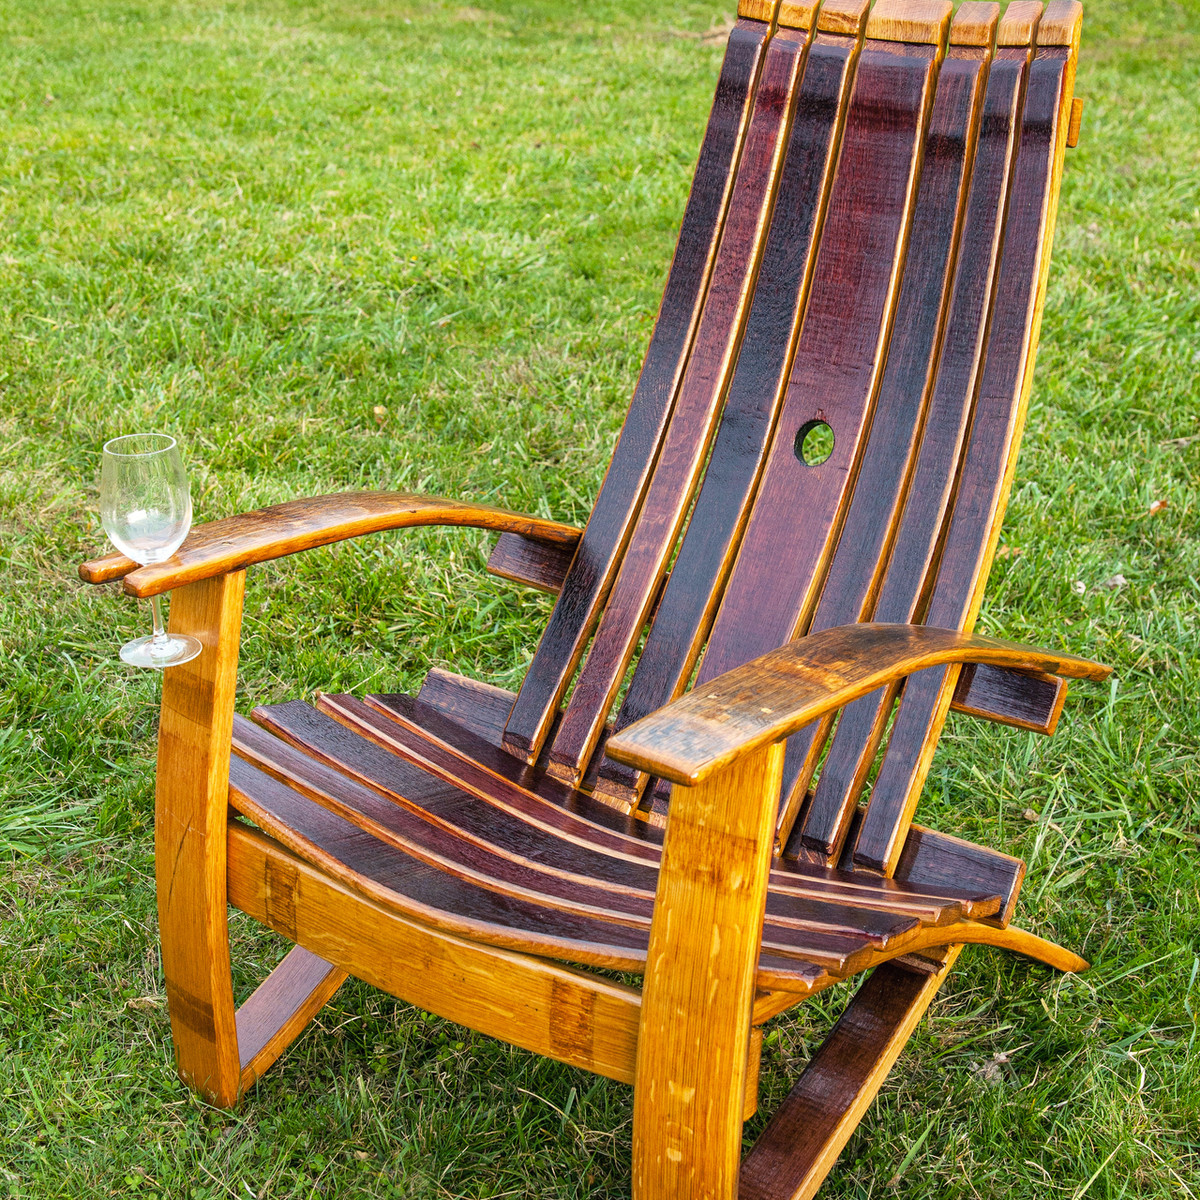 Swell Adirondack Chair With Cover Dailytribune Chair Design For Home Dailytribuneorg